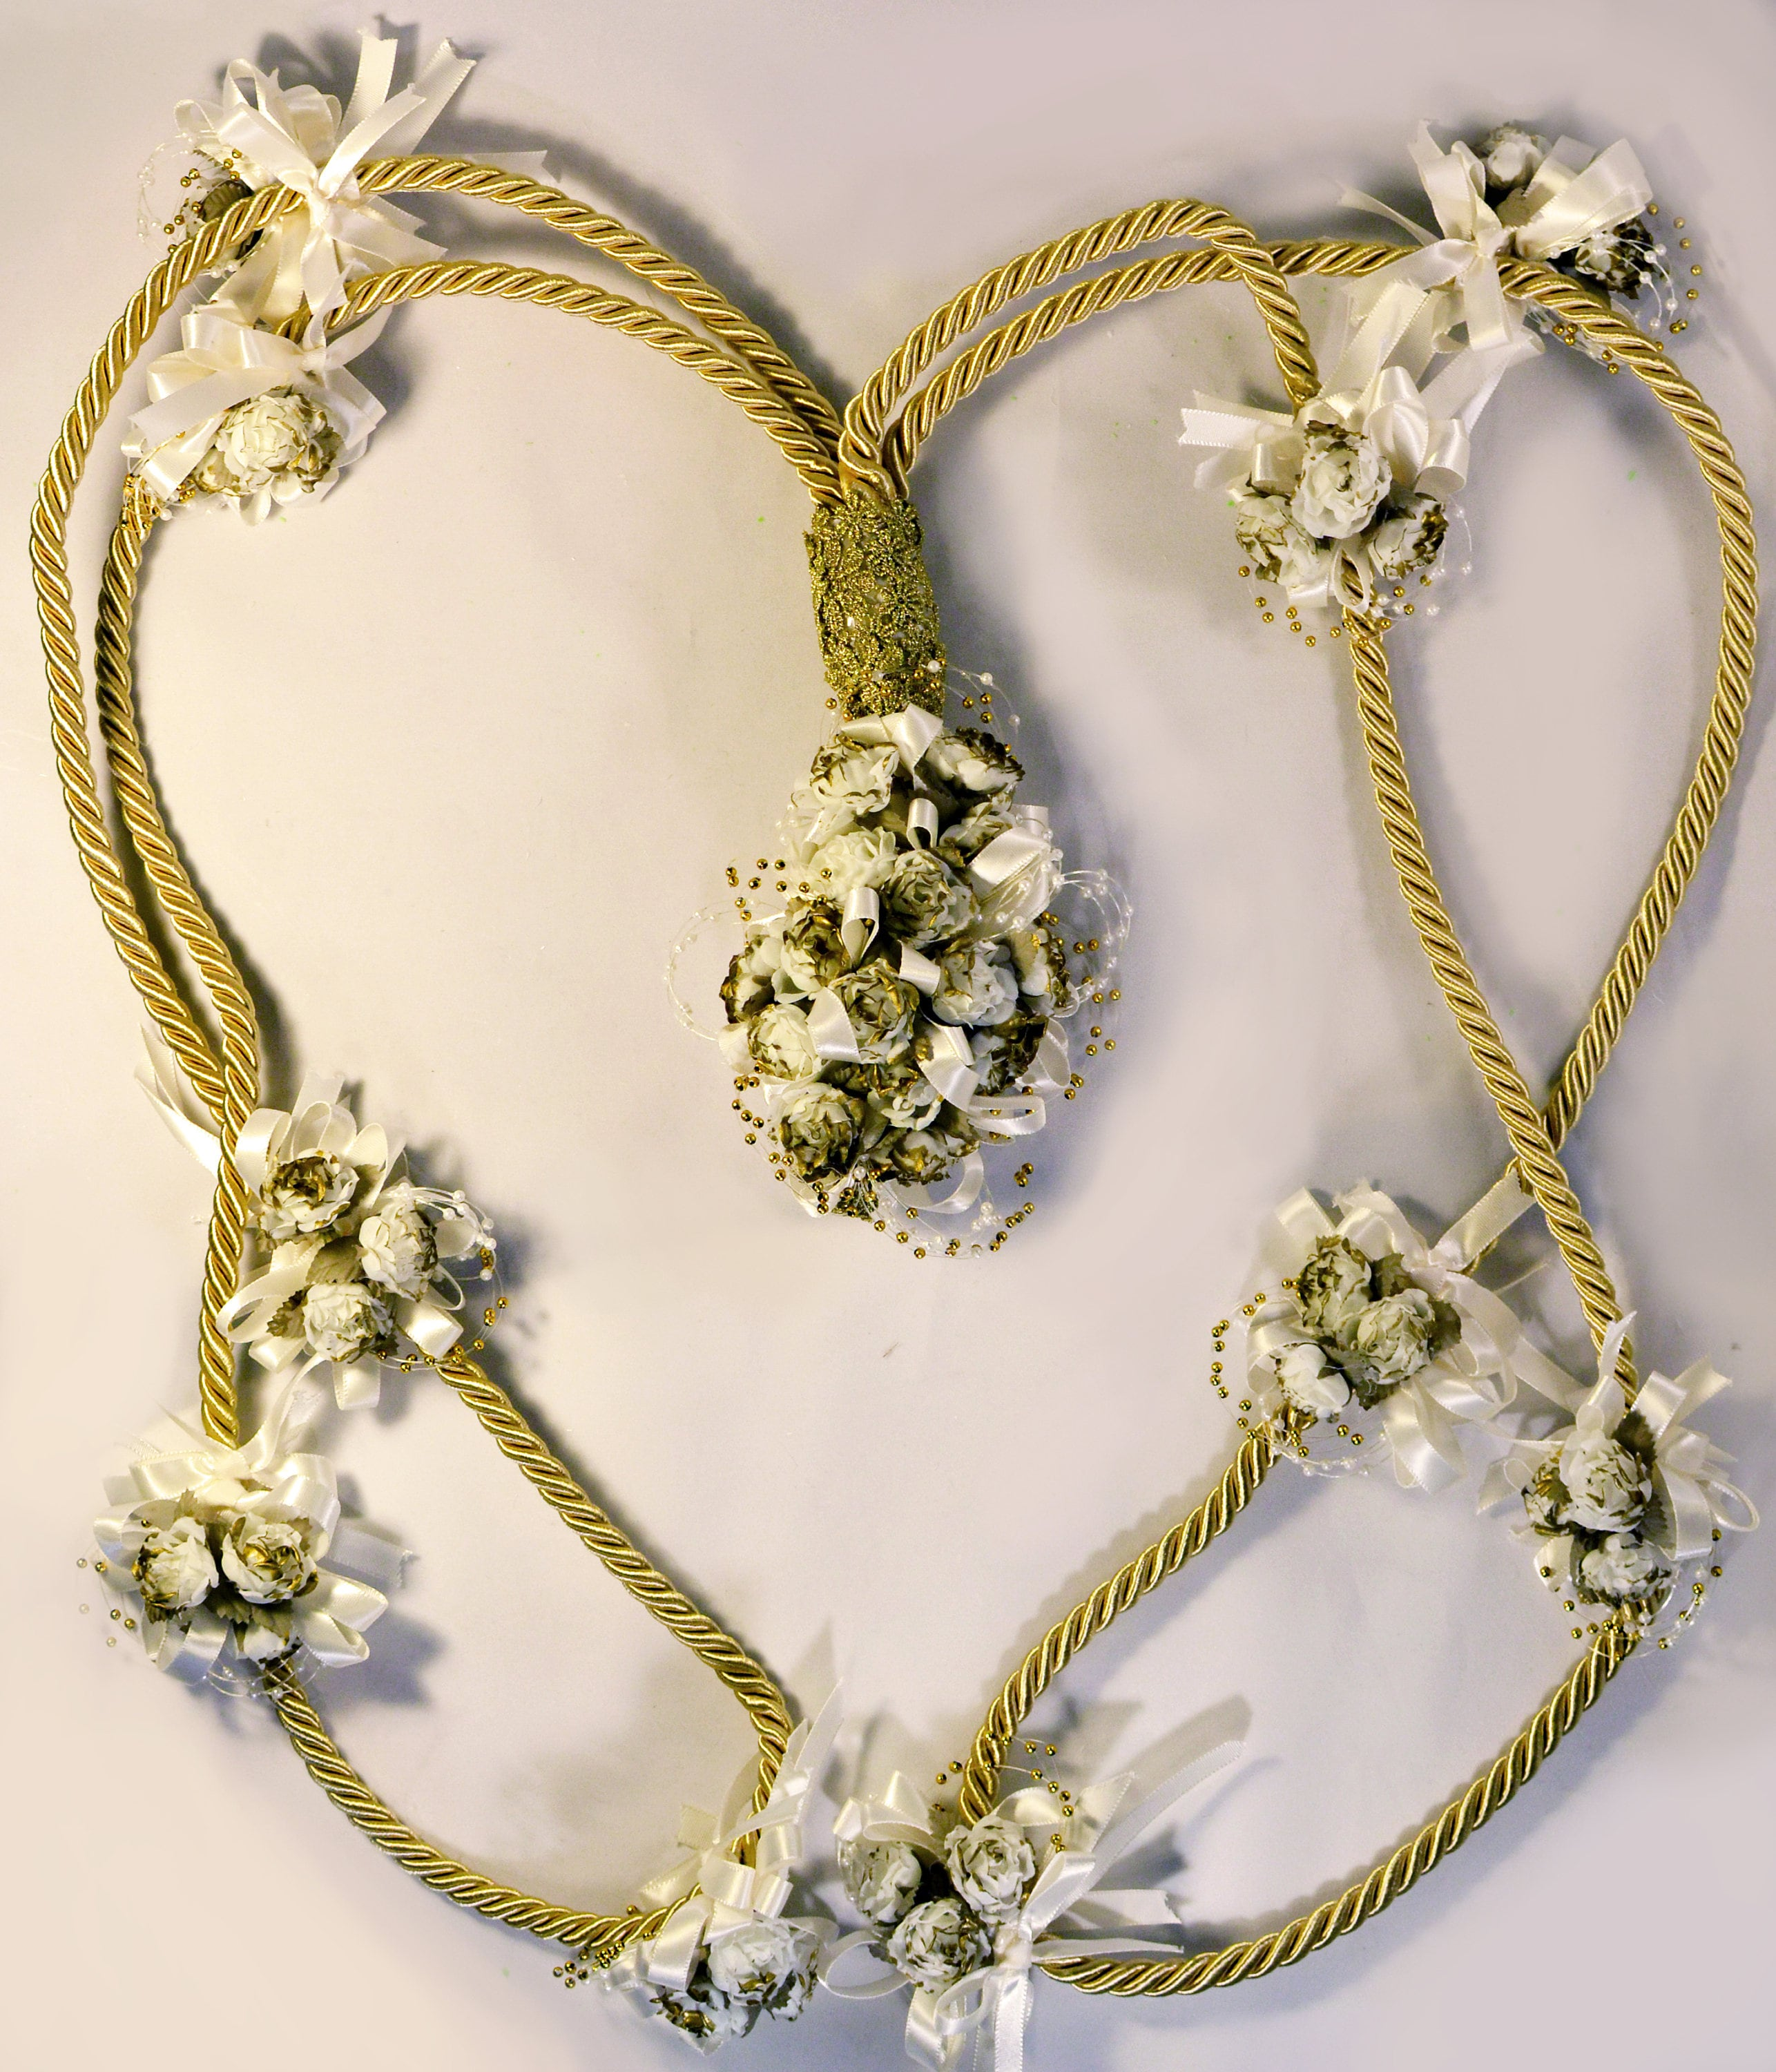 Wedding Lazo: Wedding Lasso Lazo De Boda Original Handmade Vintage Style